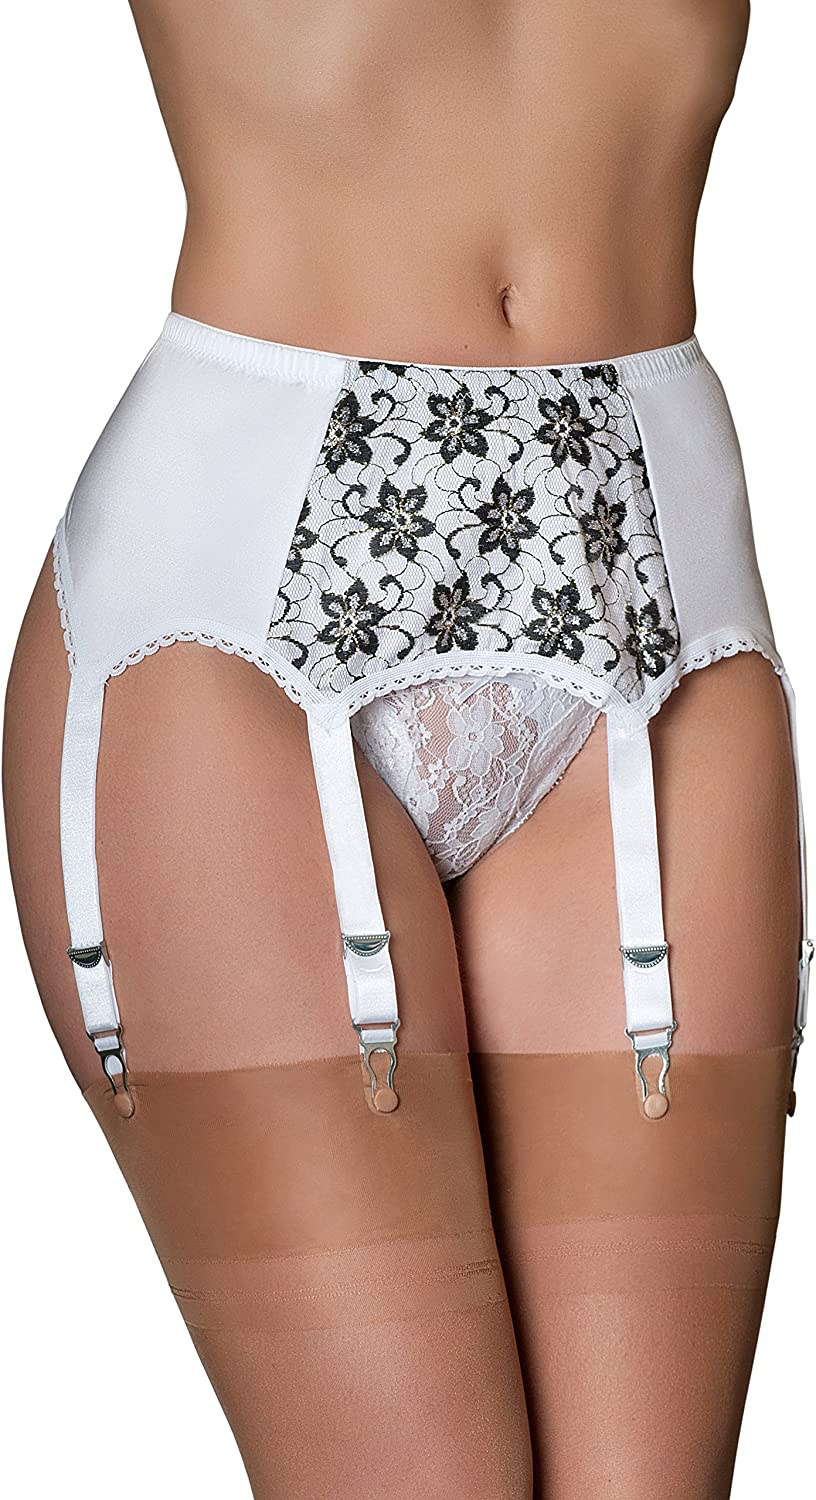 Nancies Lingerie Floral Lace 6 Stockings Belt for Garter Limited Tampa Mall time sale Strap